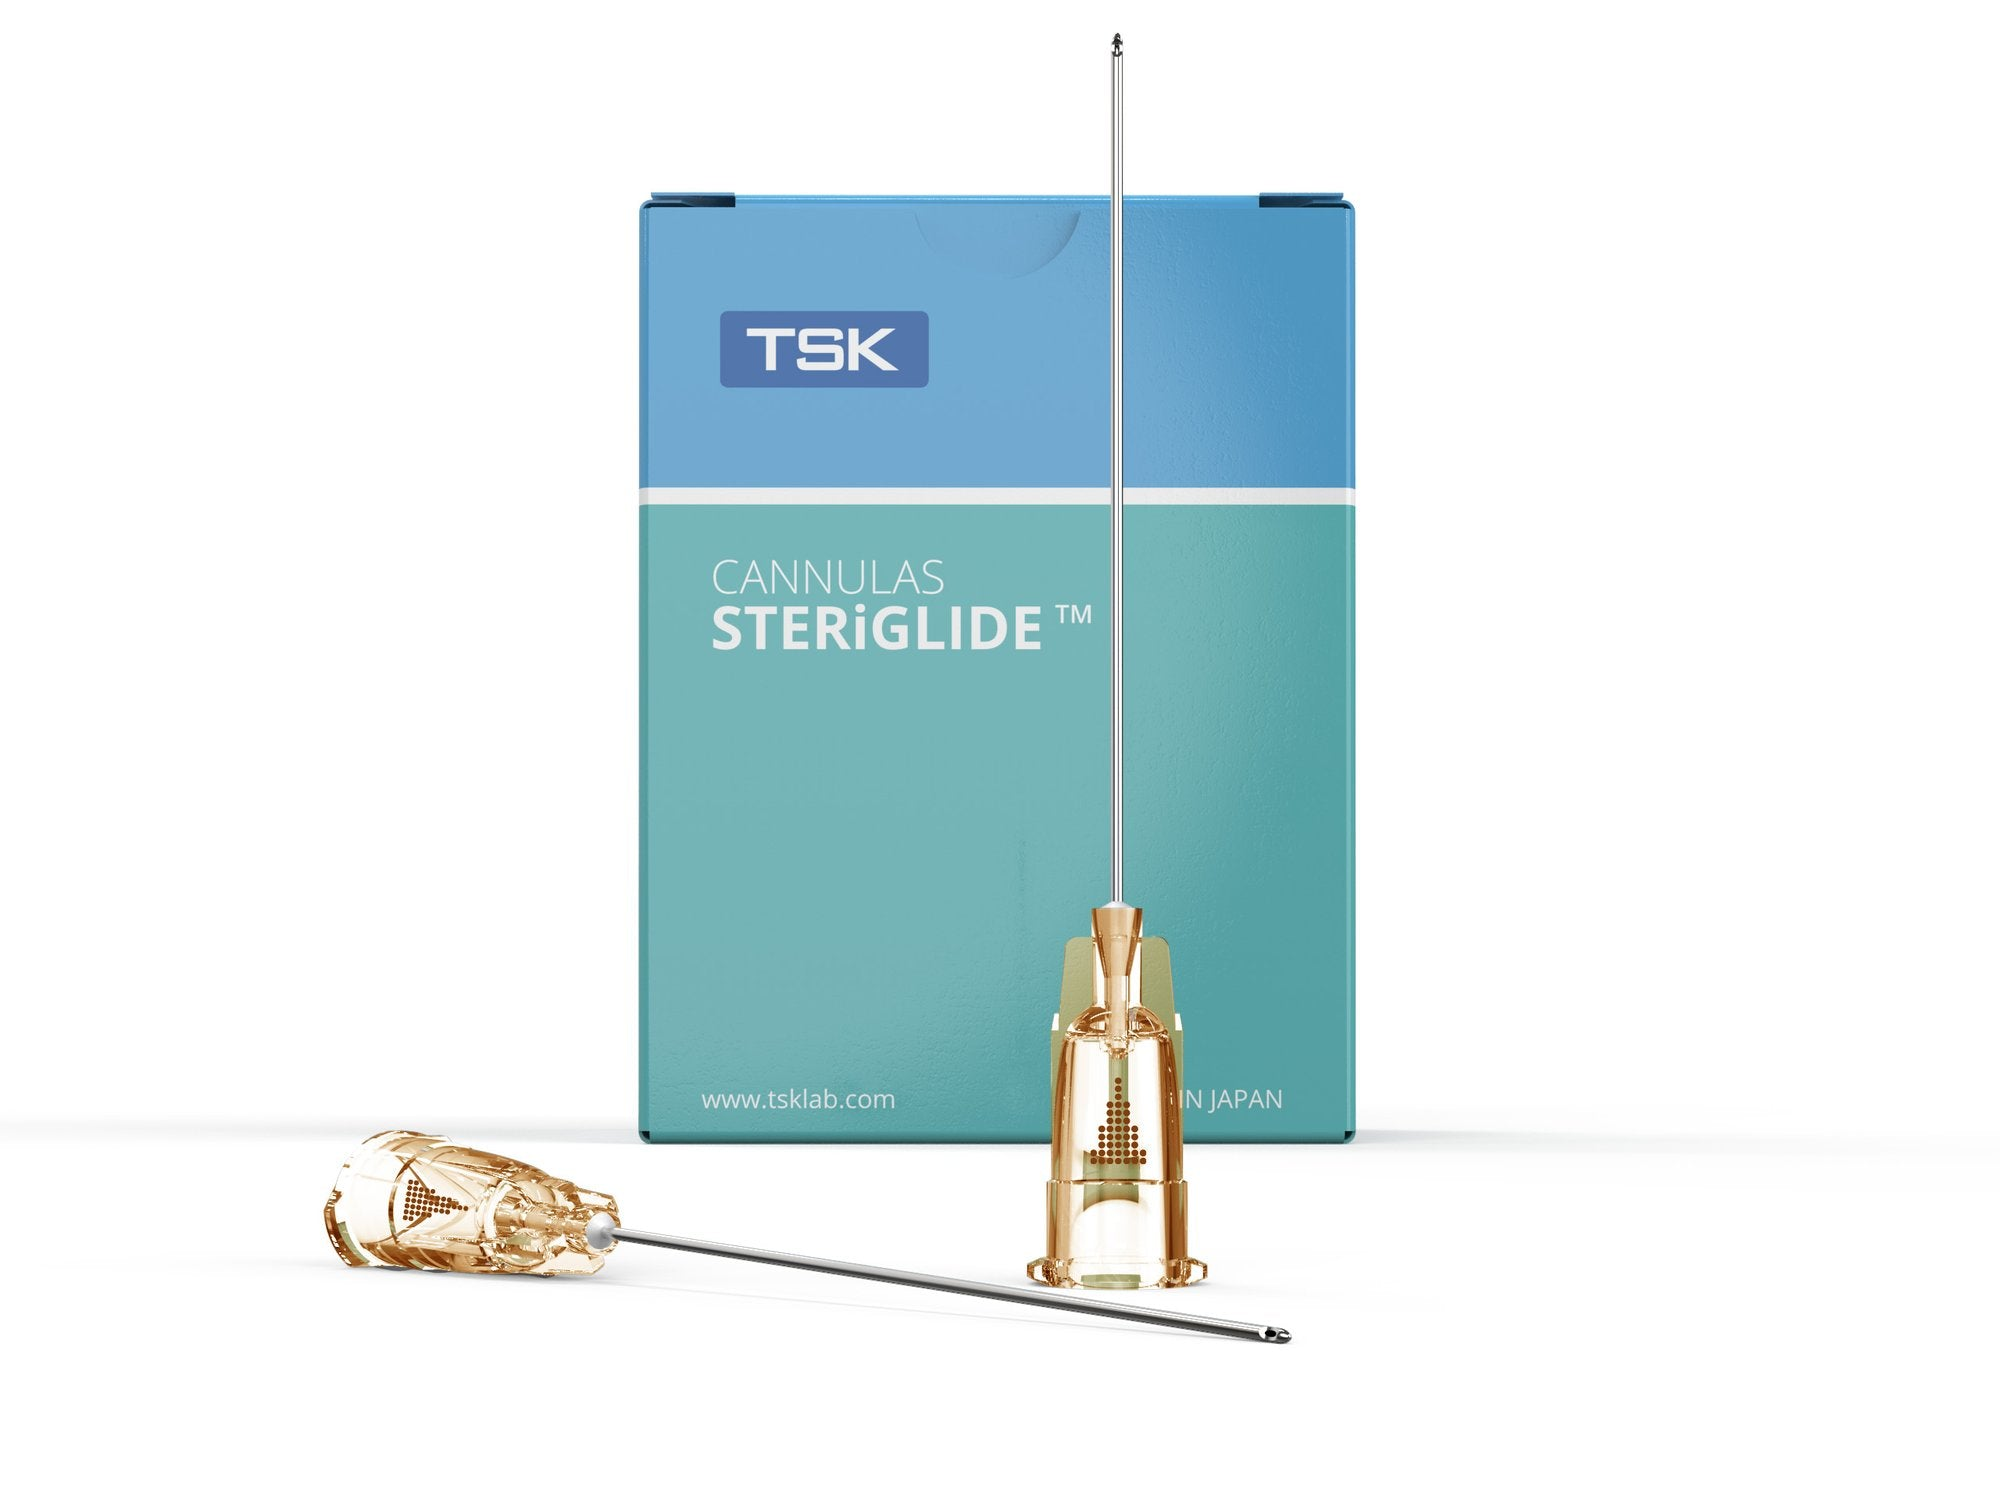 TSK STERiGLIDE™ Premium Aesthetic Dermal Filling Cannulas - Box of 20